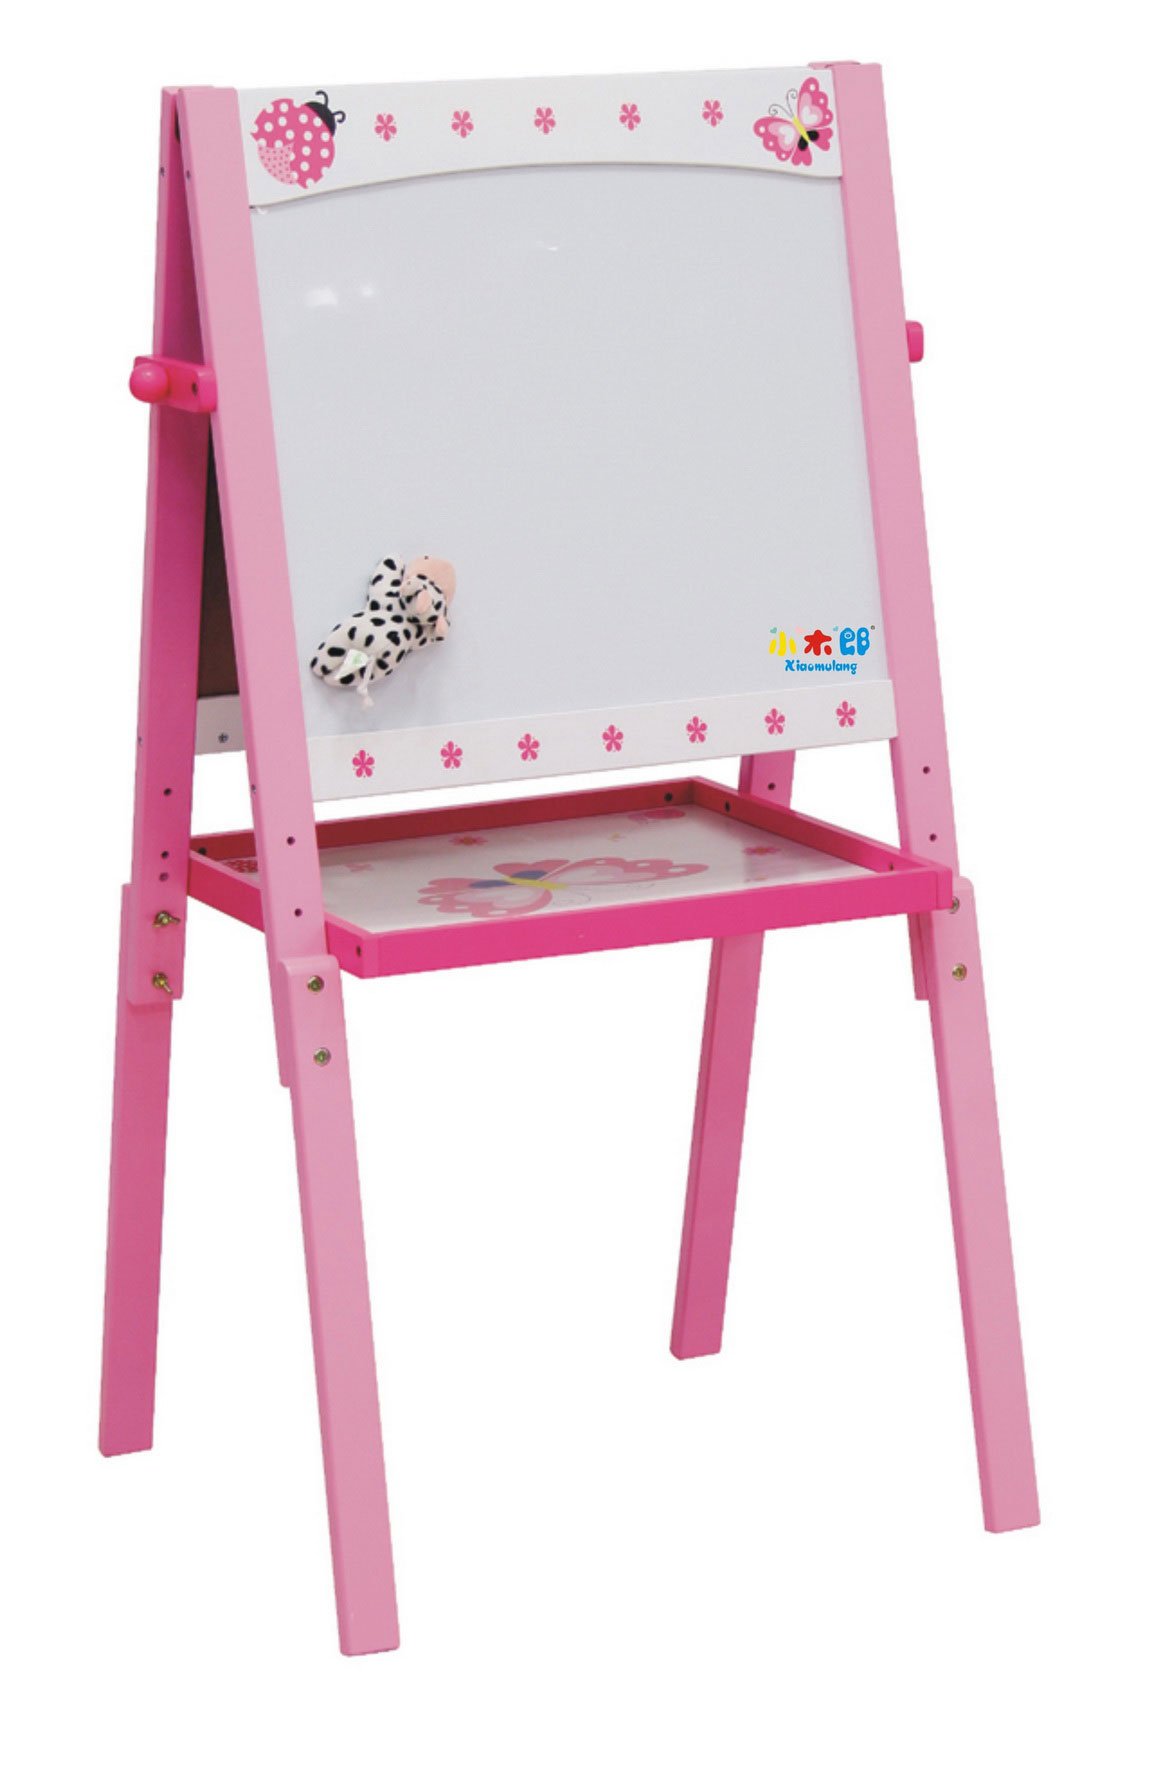 Bedroom Furniture Drawing board photo - 1